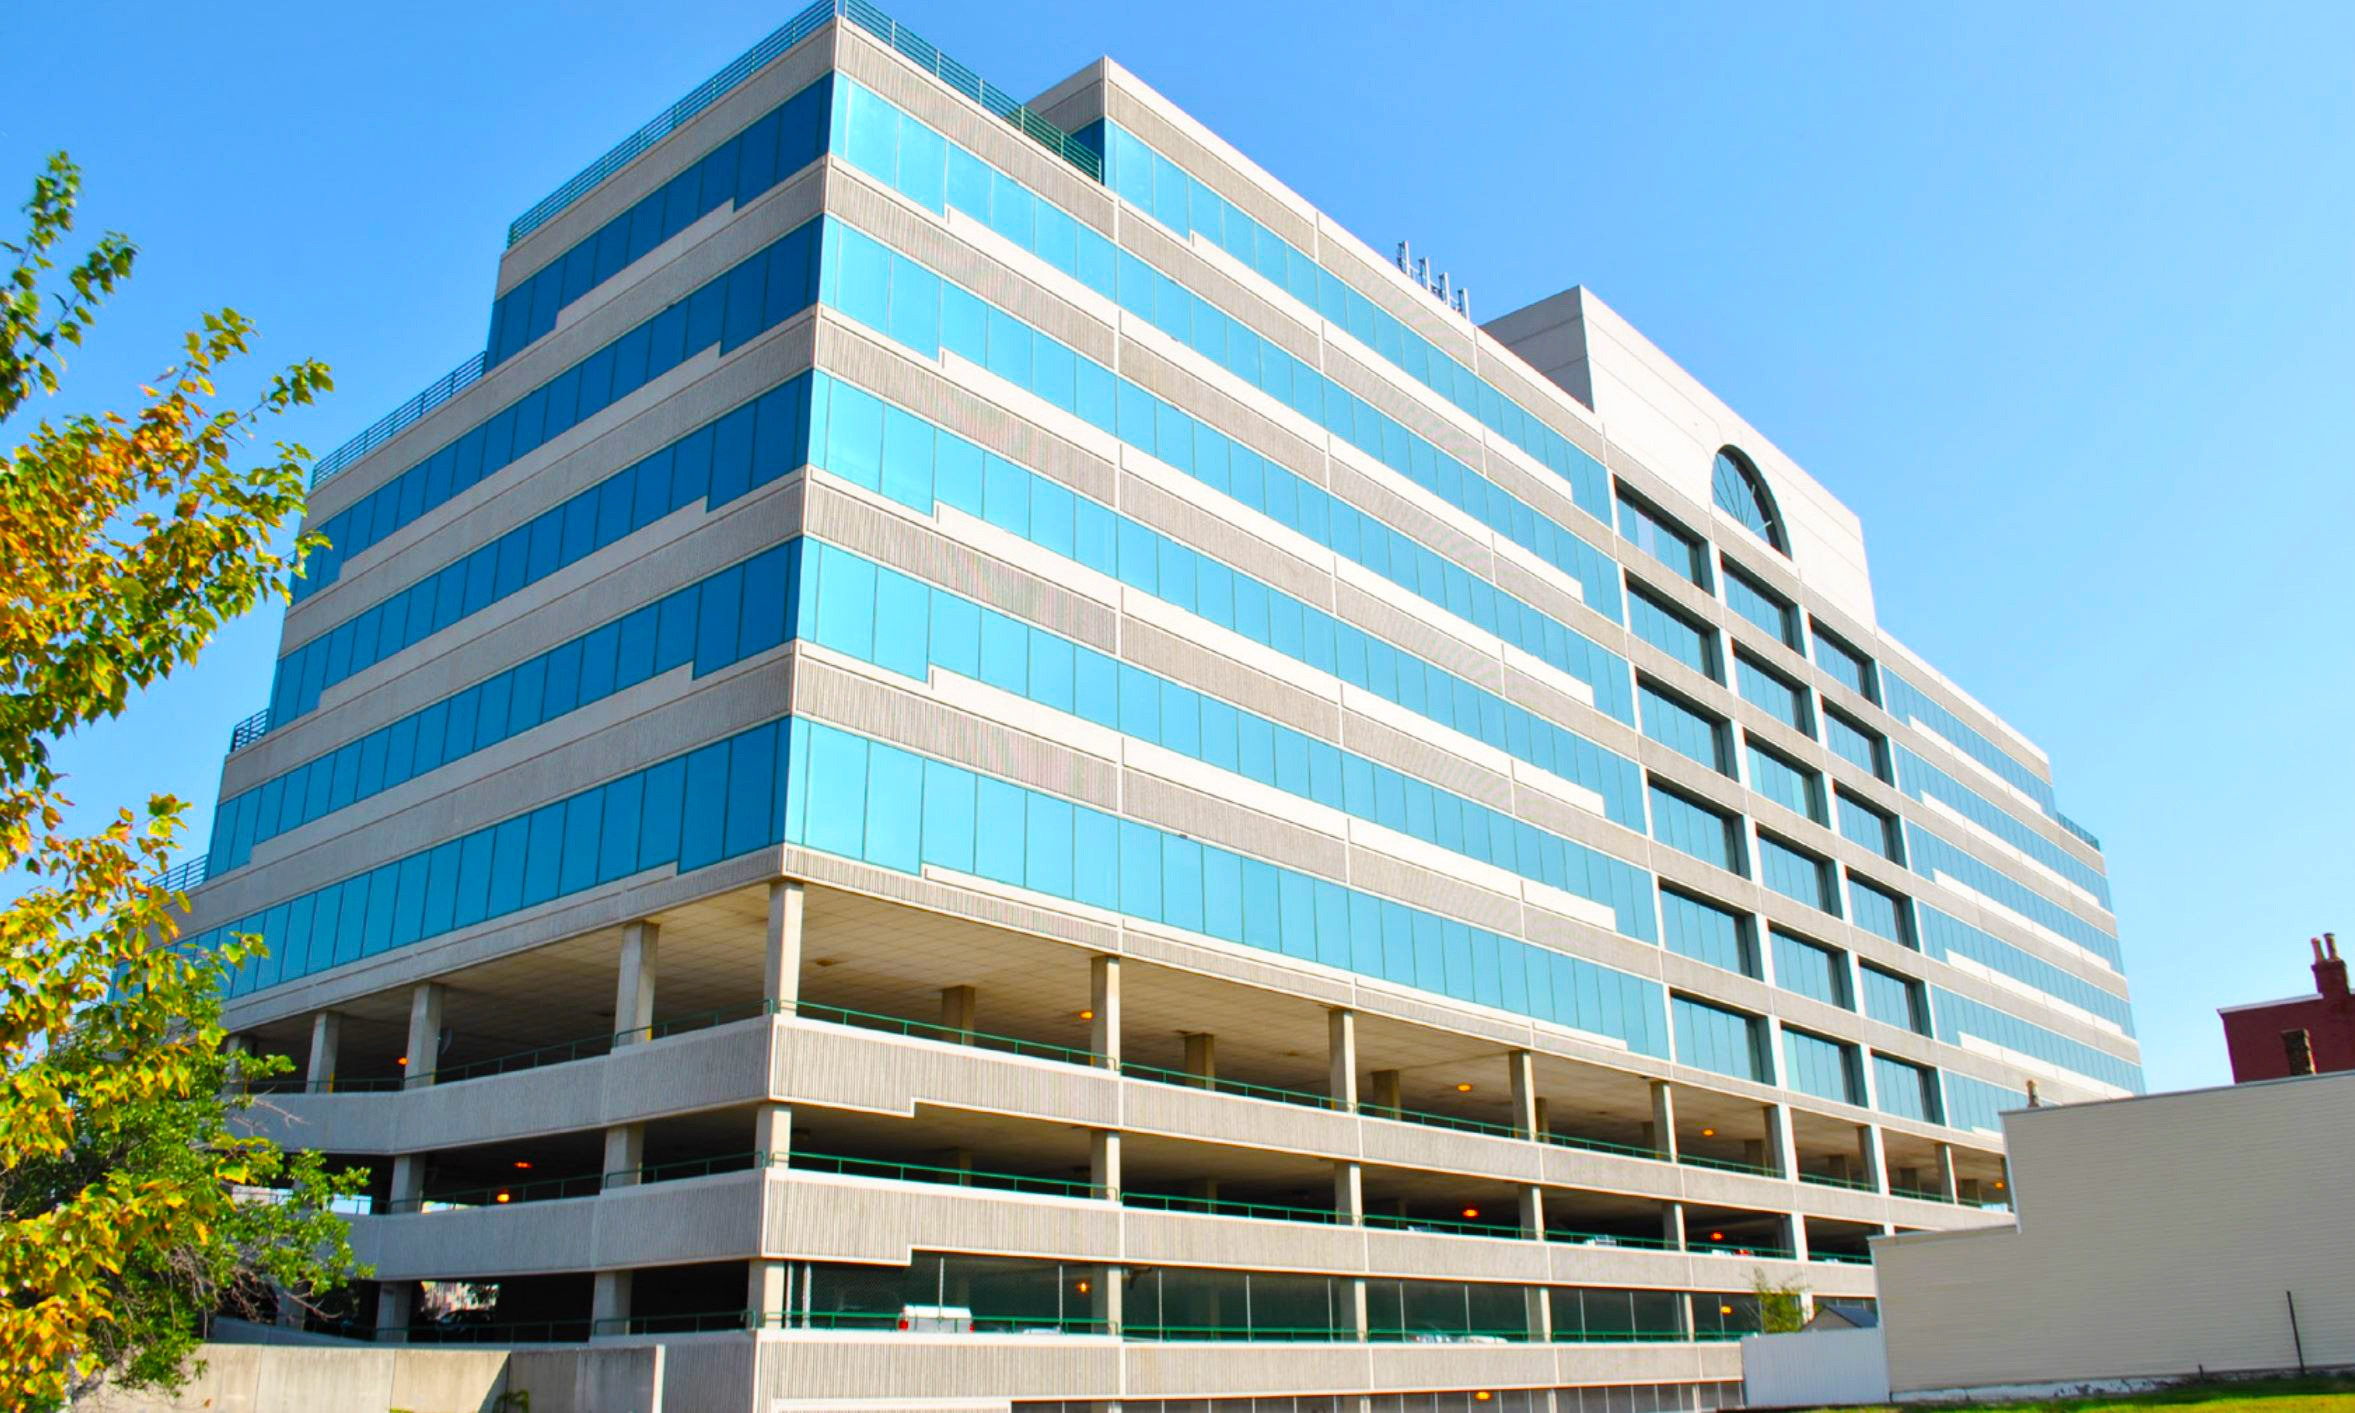 Glass, metal and stone surface restoration services performed by Presto at One Riverfront Place in Newport, KY